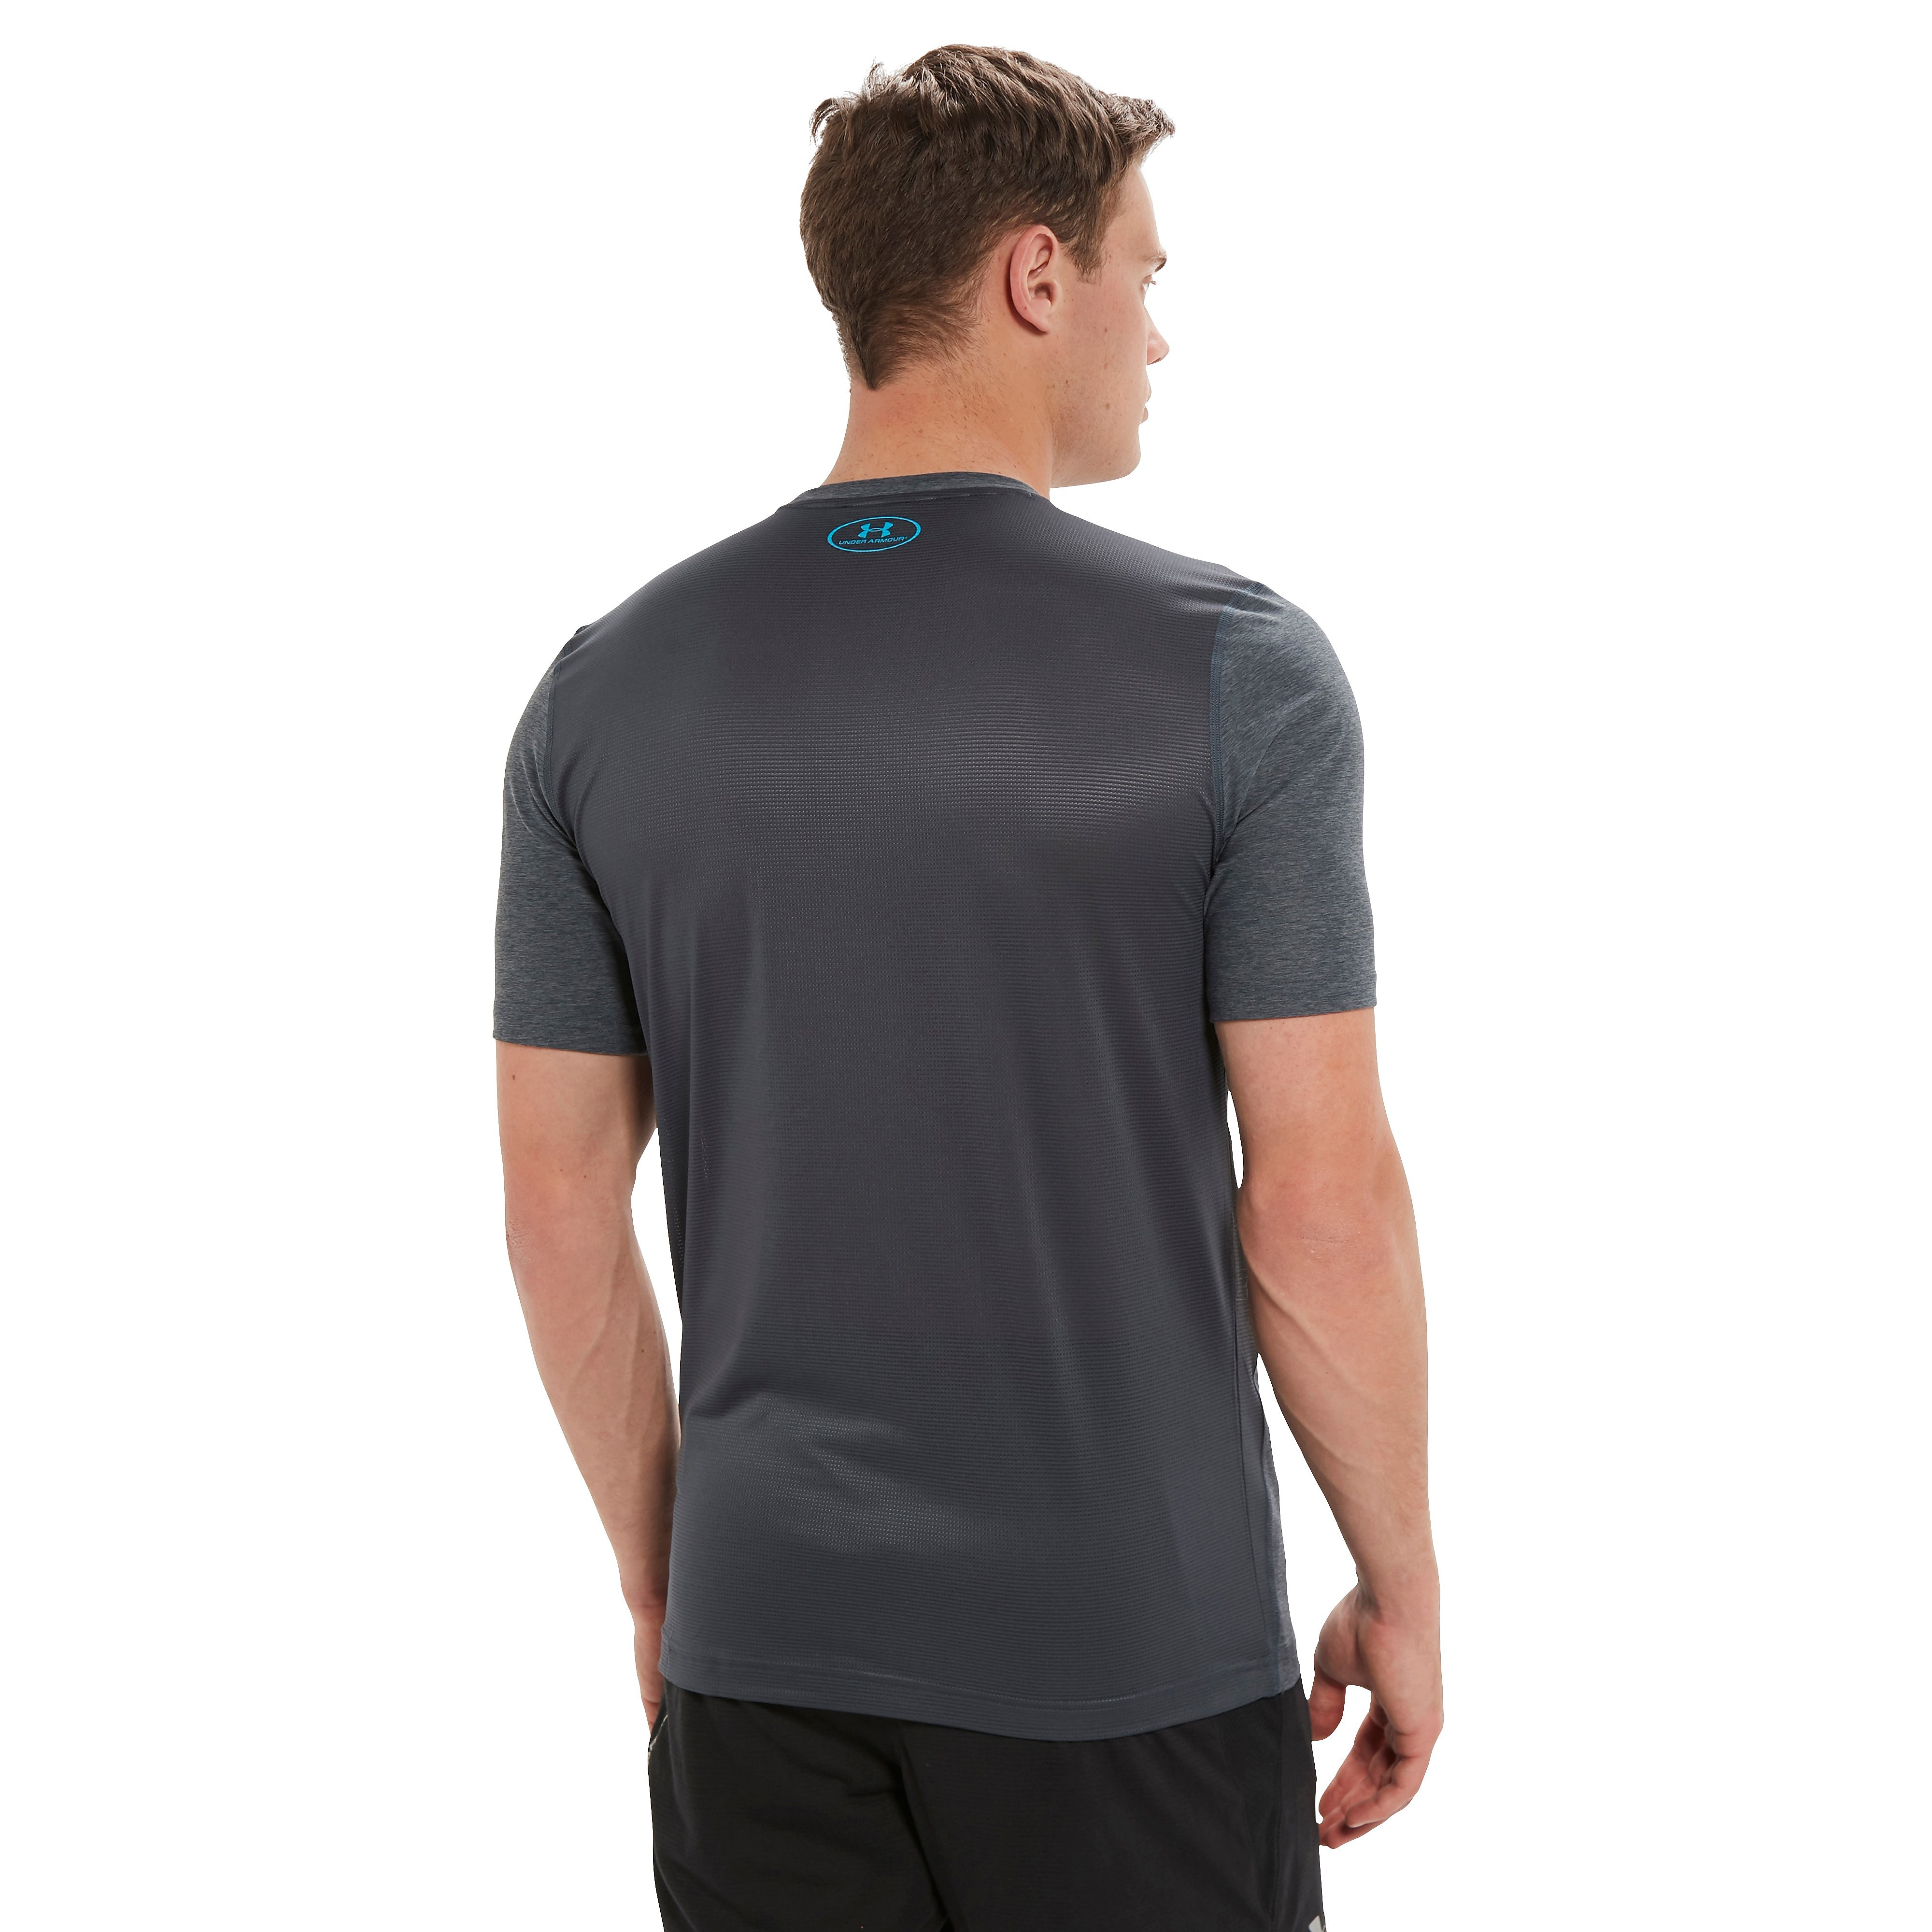 Under Armour Raid Graphic Men's T-shirt